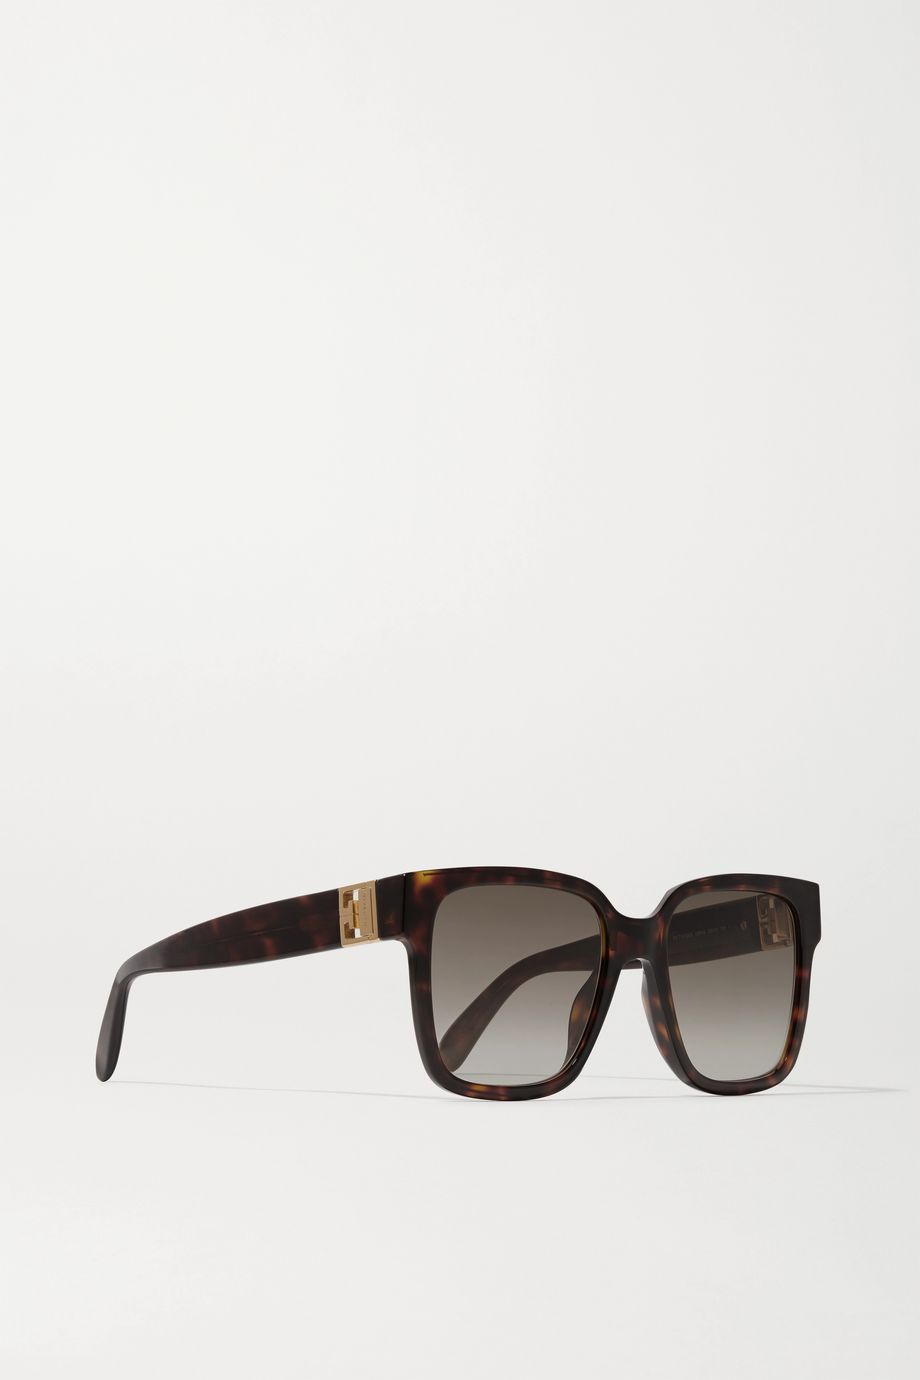 Givenchy Oversized square-frame tortoiseshell acetate sunglasses